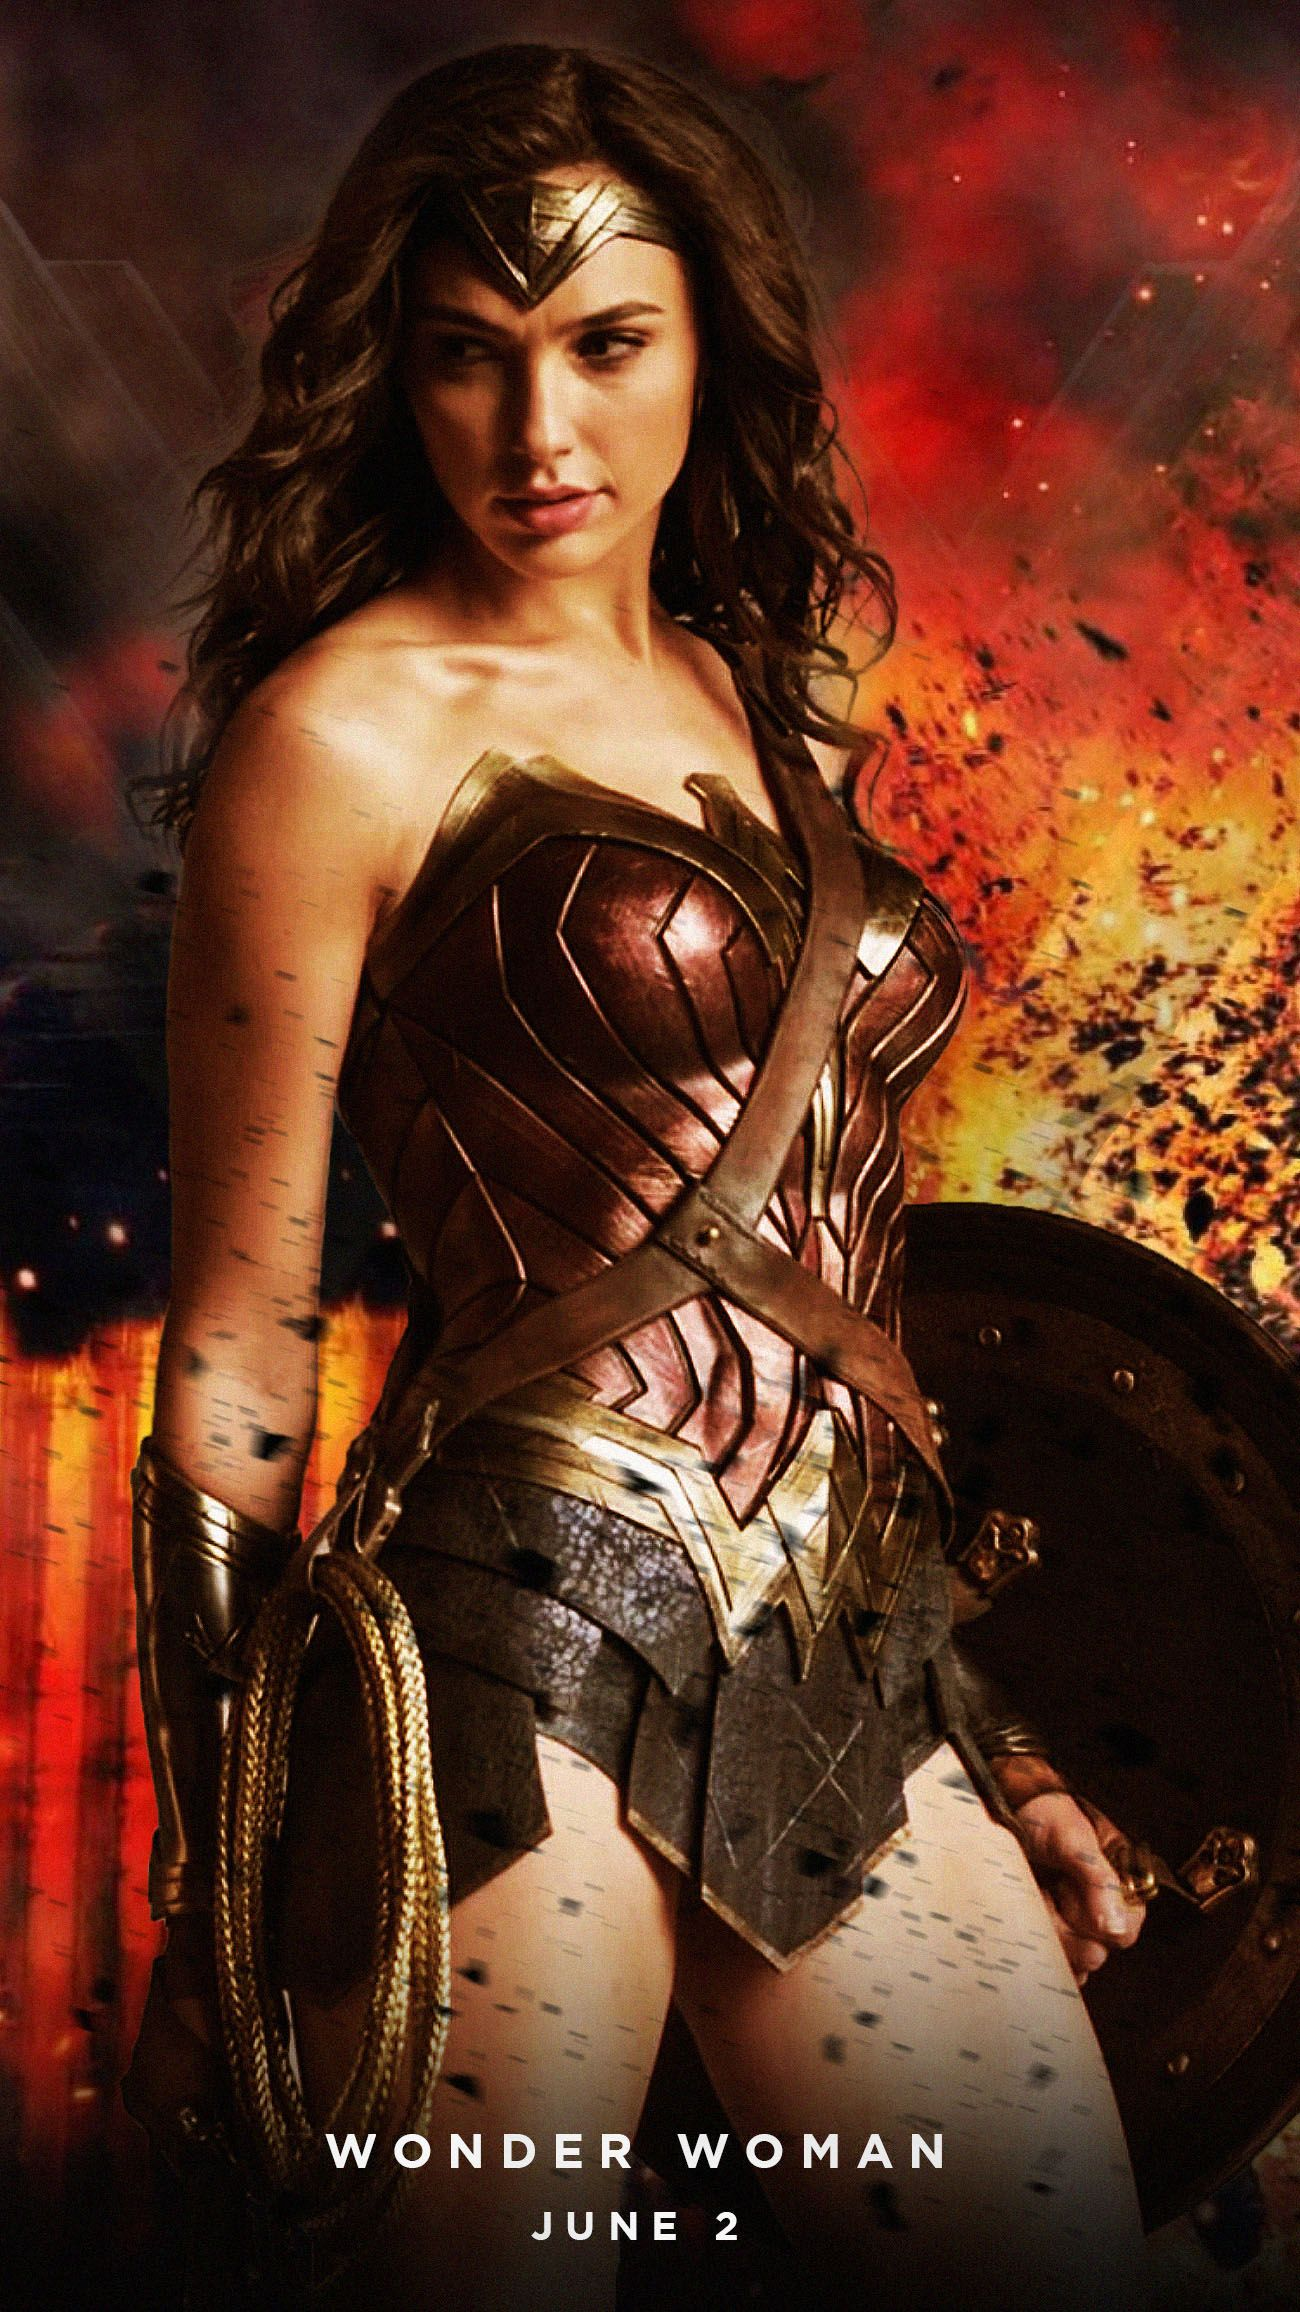 Hd Superhero Wallpapers For Pc Wonder Woman 2017 Hd Wallpaper From Gallsource Com